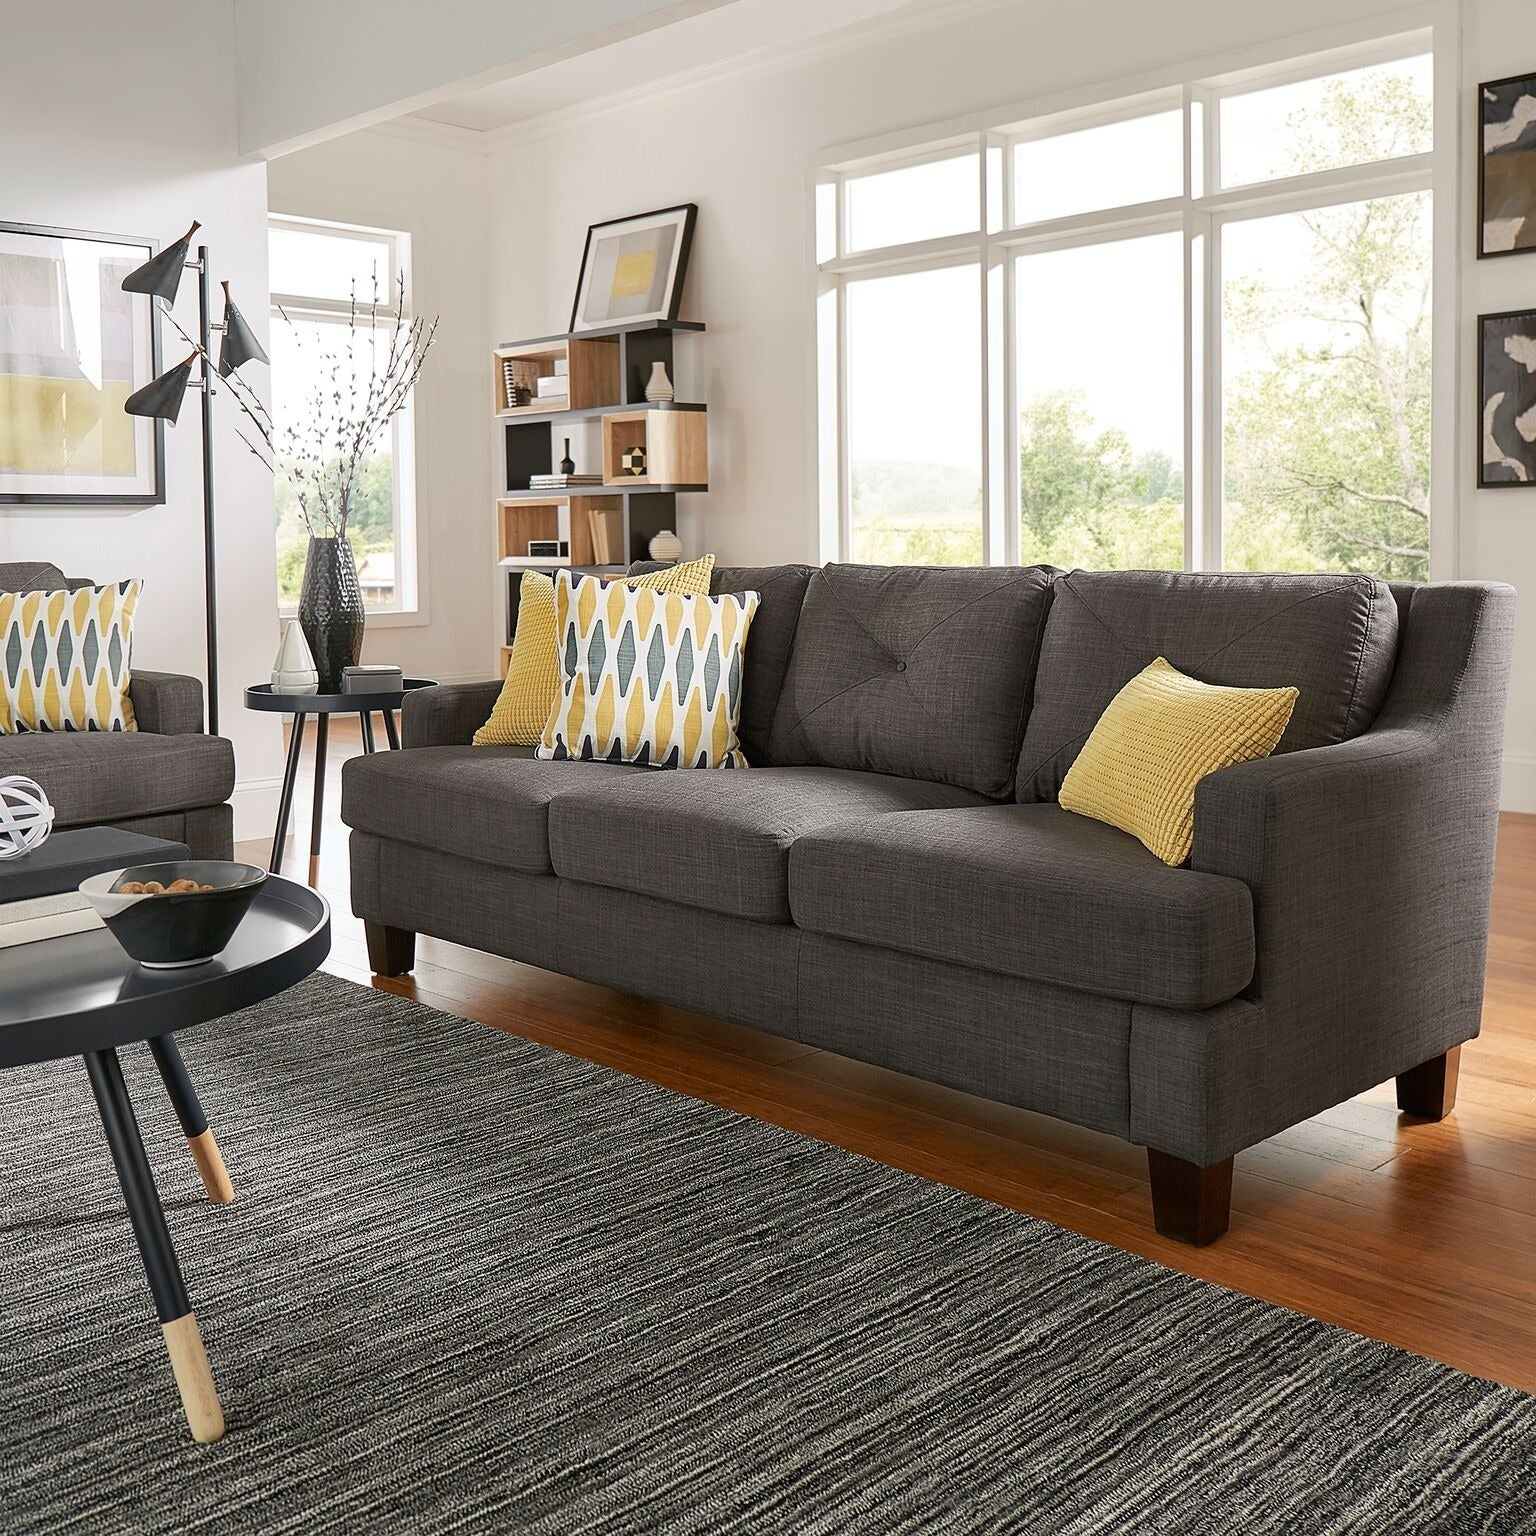 Marvelous Elston Linen Tufted Sloped Track Sofa INSPIRE Q Modern (Option: Dark Gray  Linen)